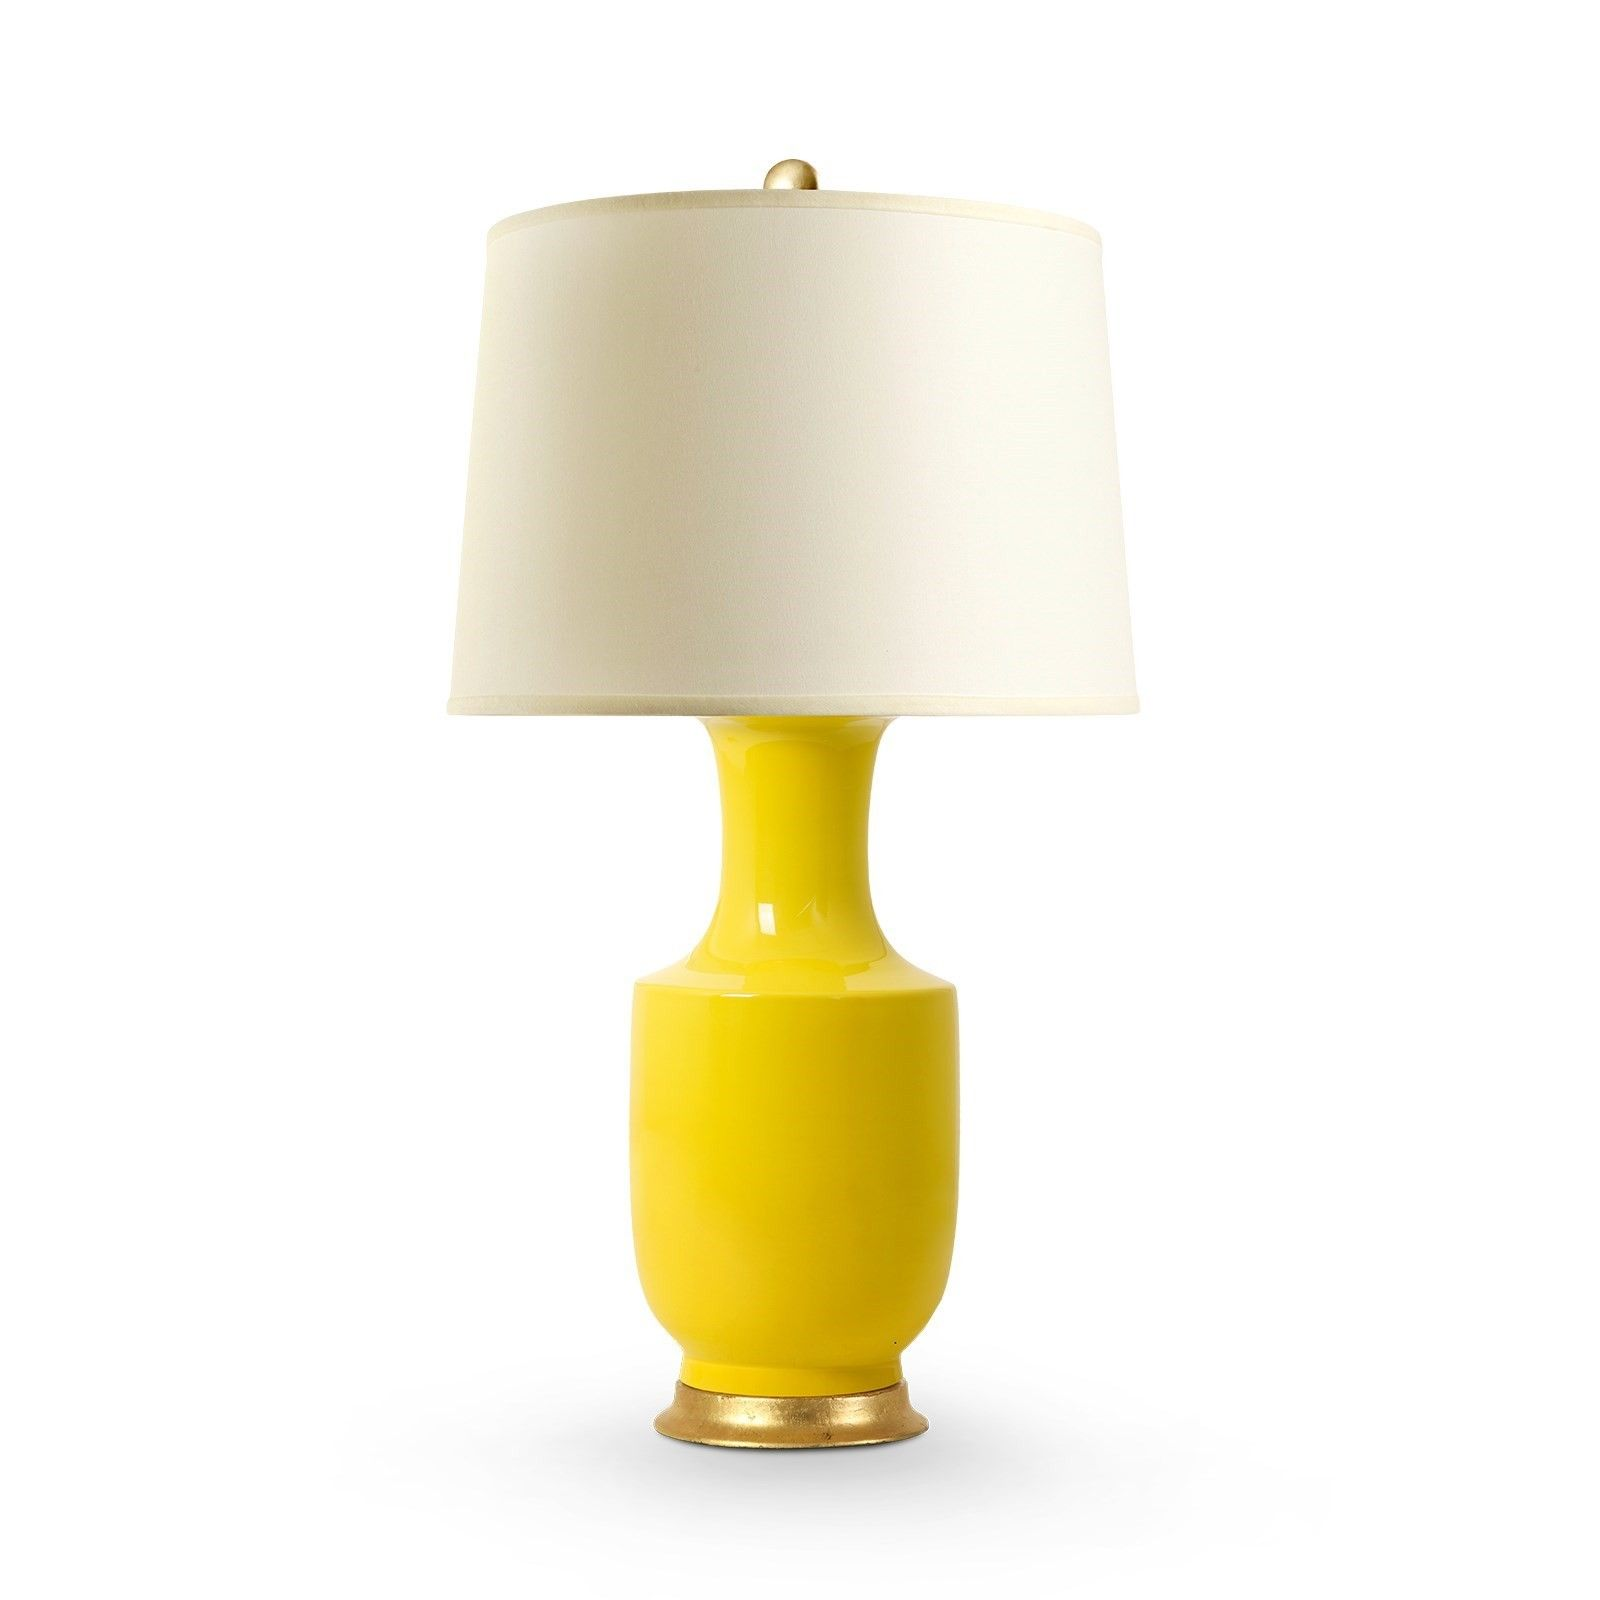 Yellow lamp base - Bungalow 5 Thalia Porcelain Lamp In Yellow With Gold Leaf Base